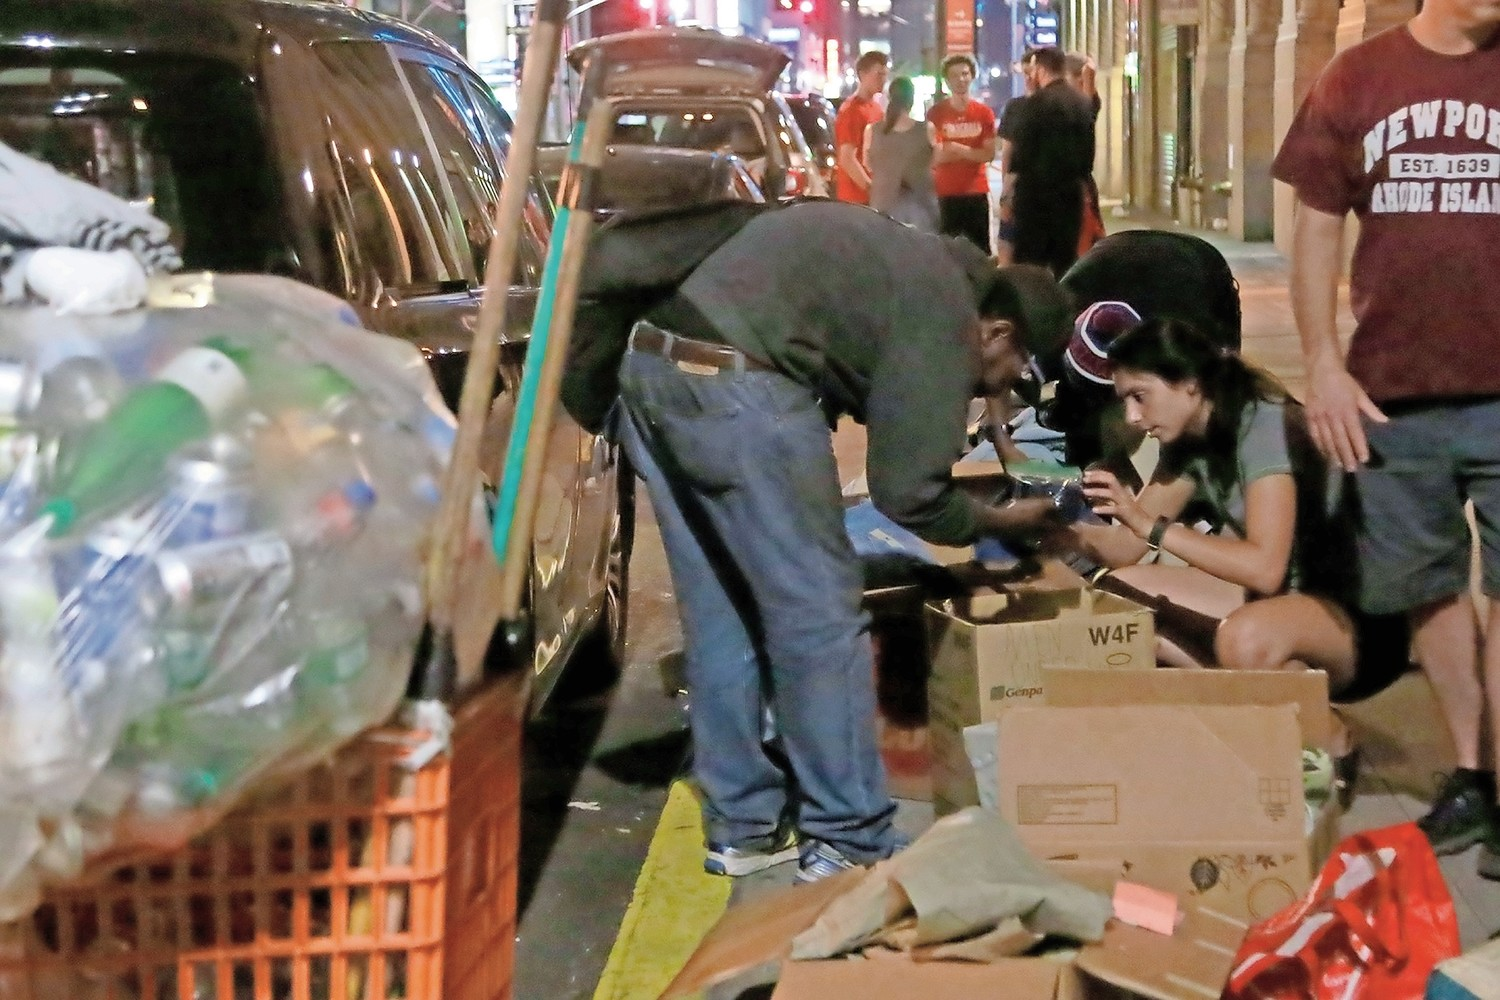 Emily Macaluso helped a homeless man look for jeans in his size.